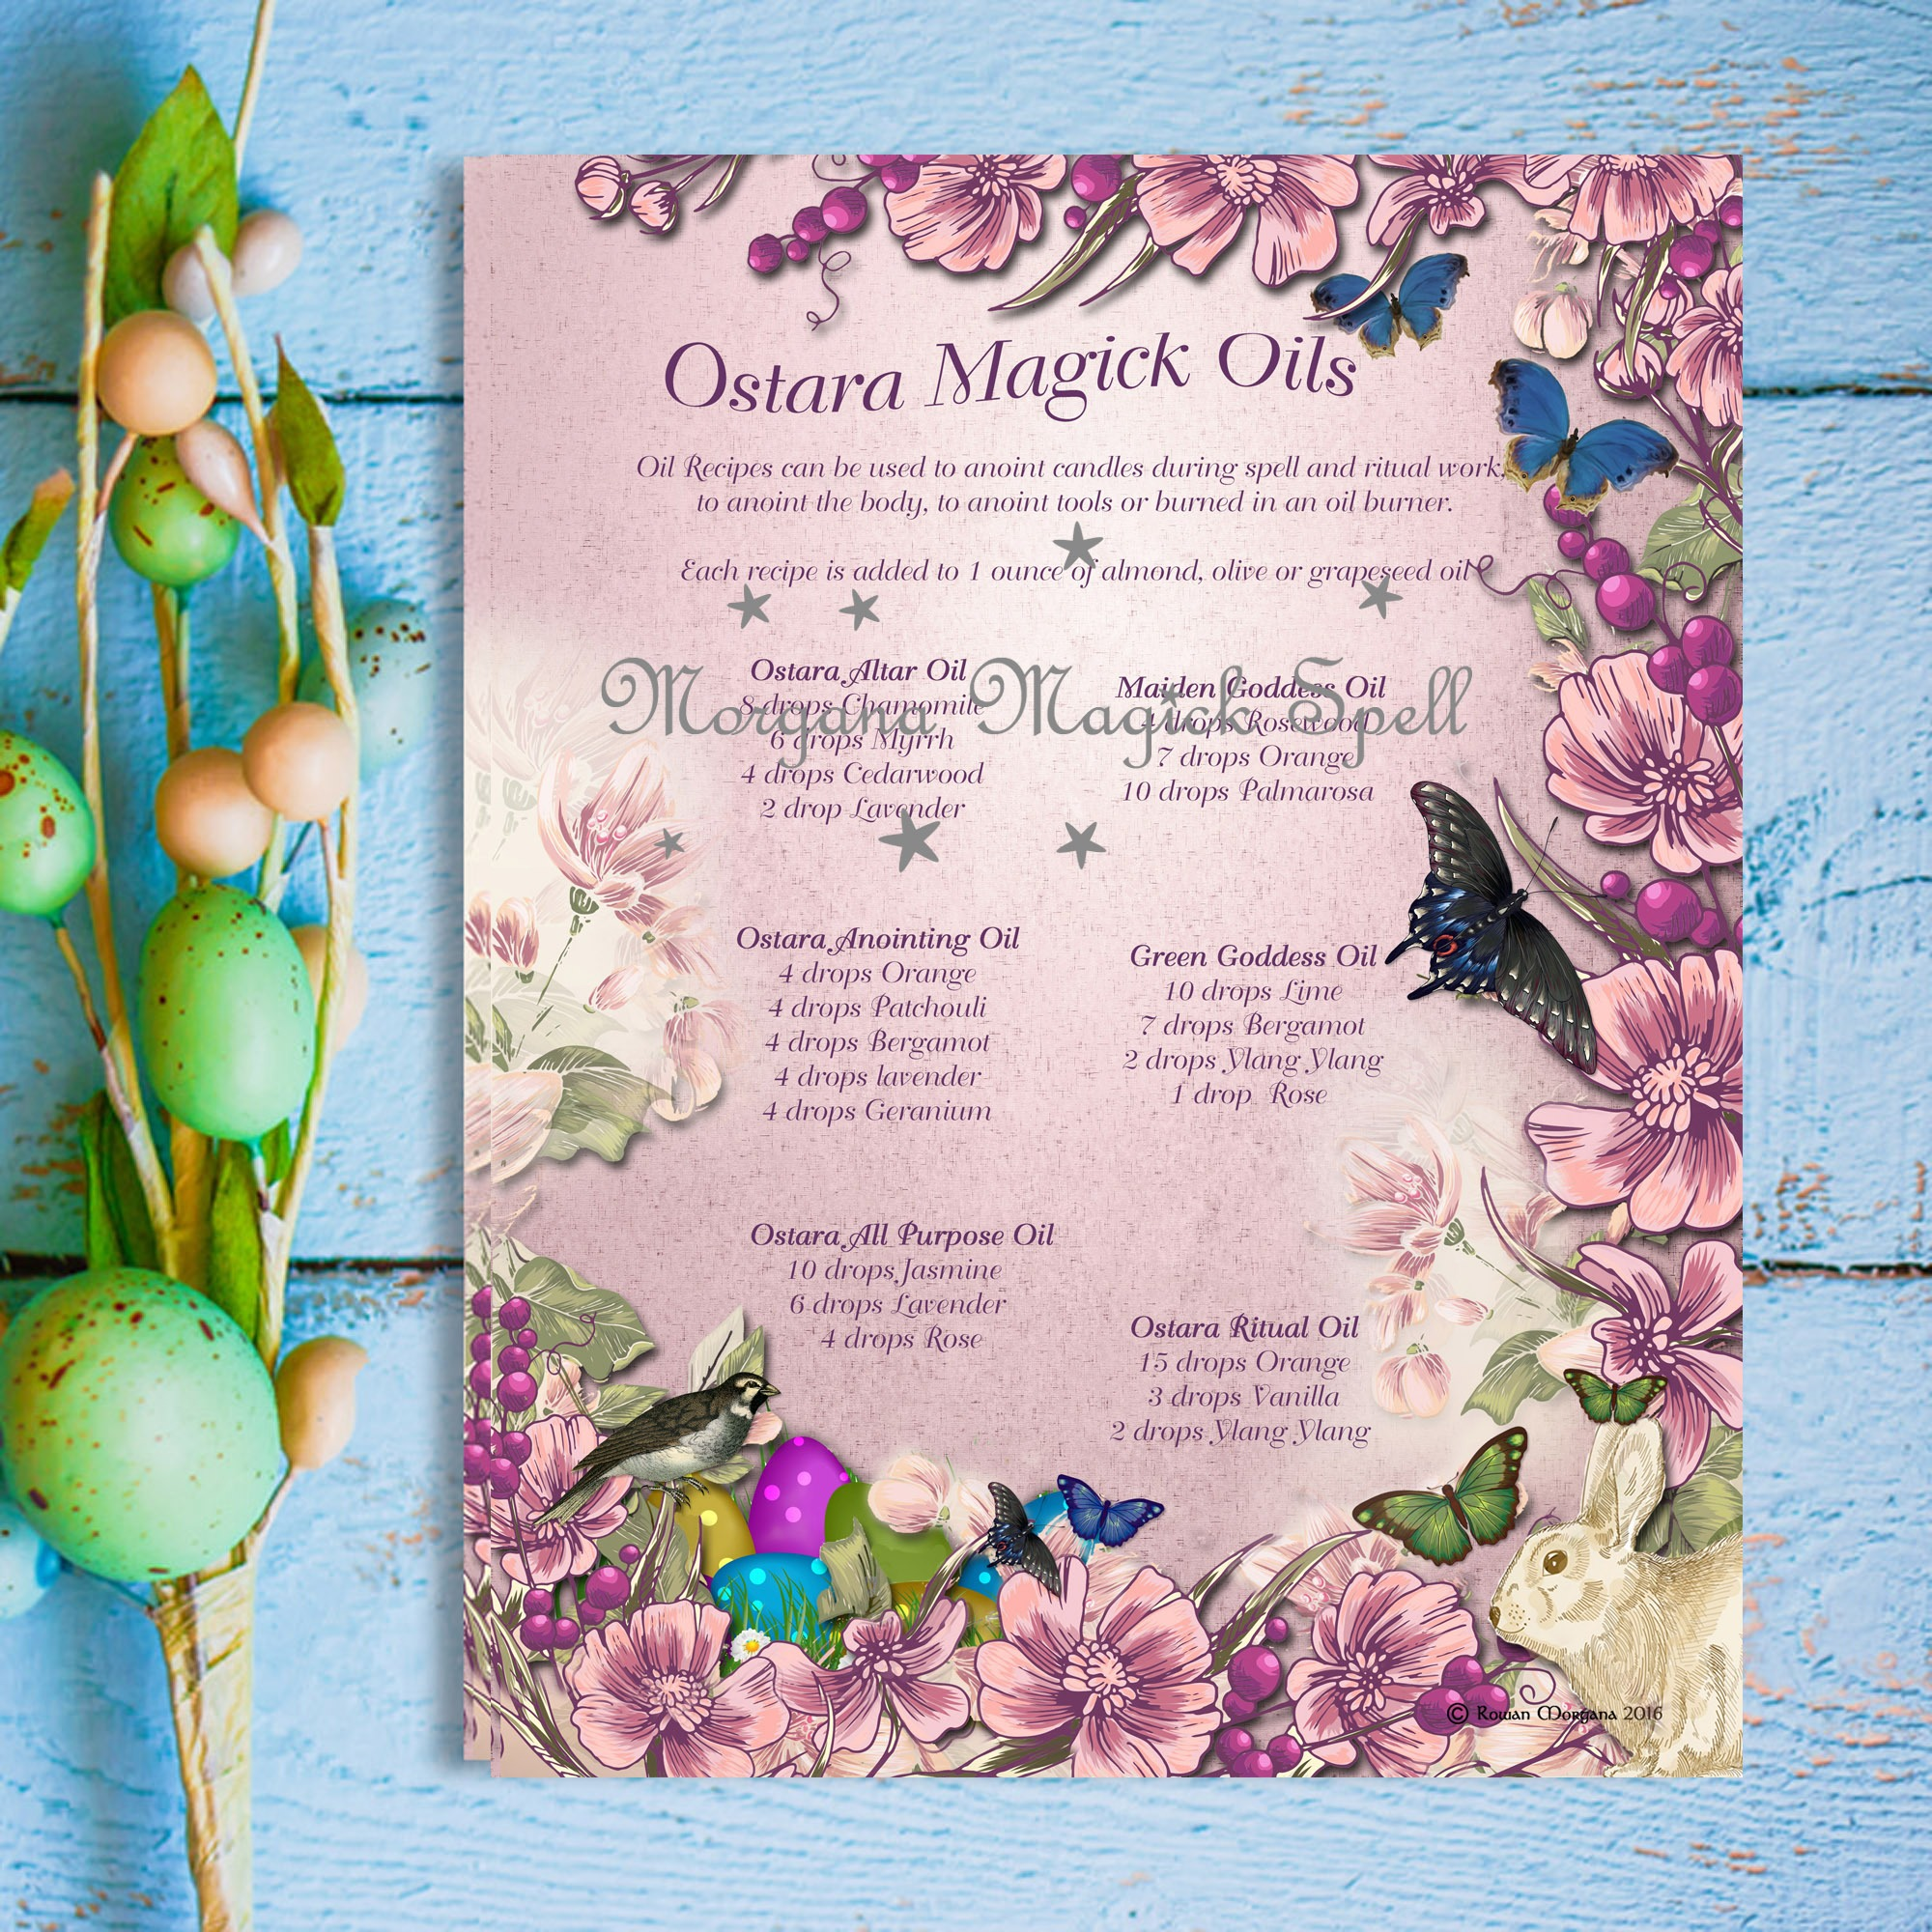 OSTARA MAGICK OILS